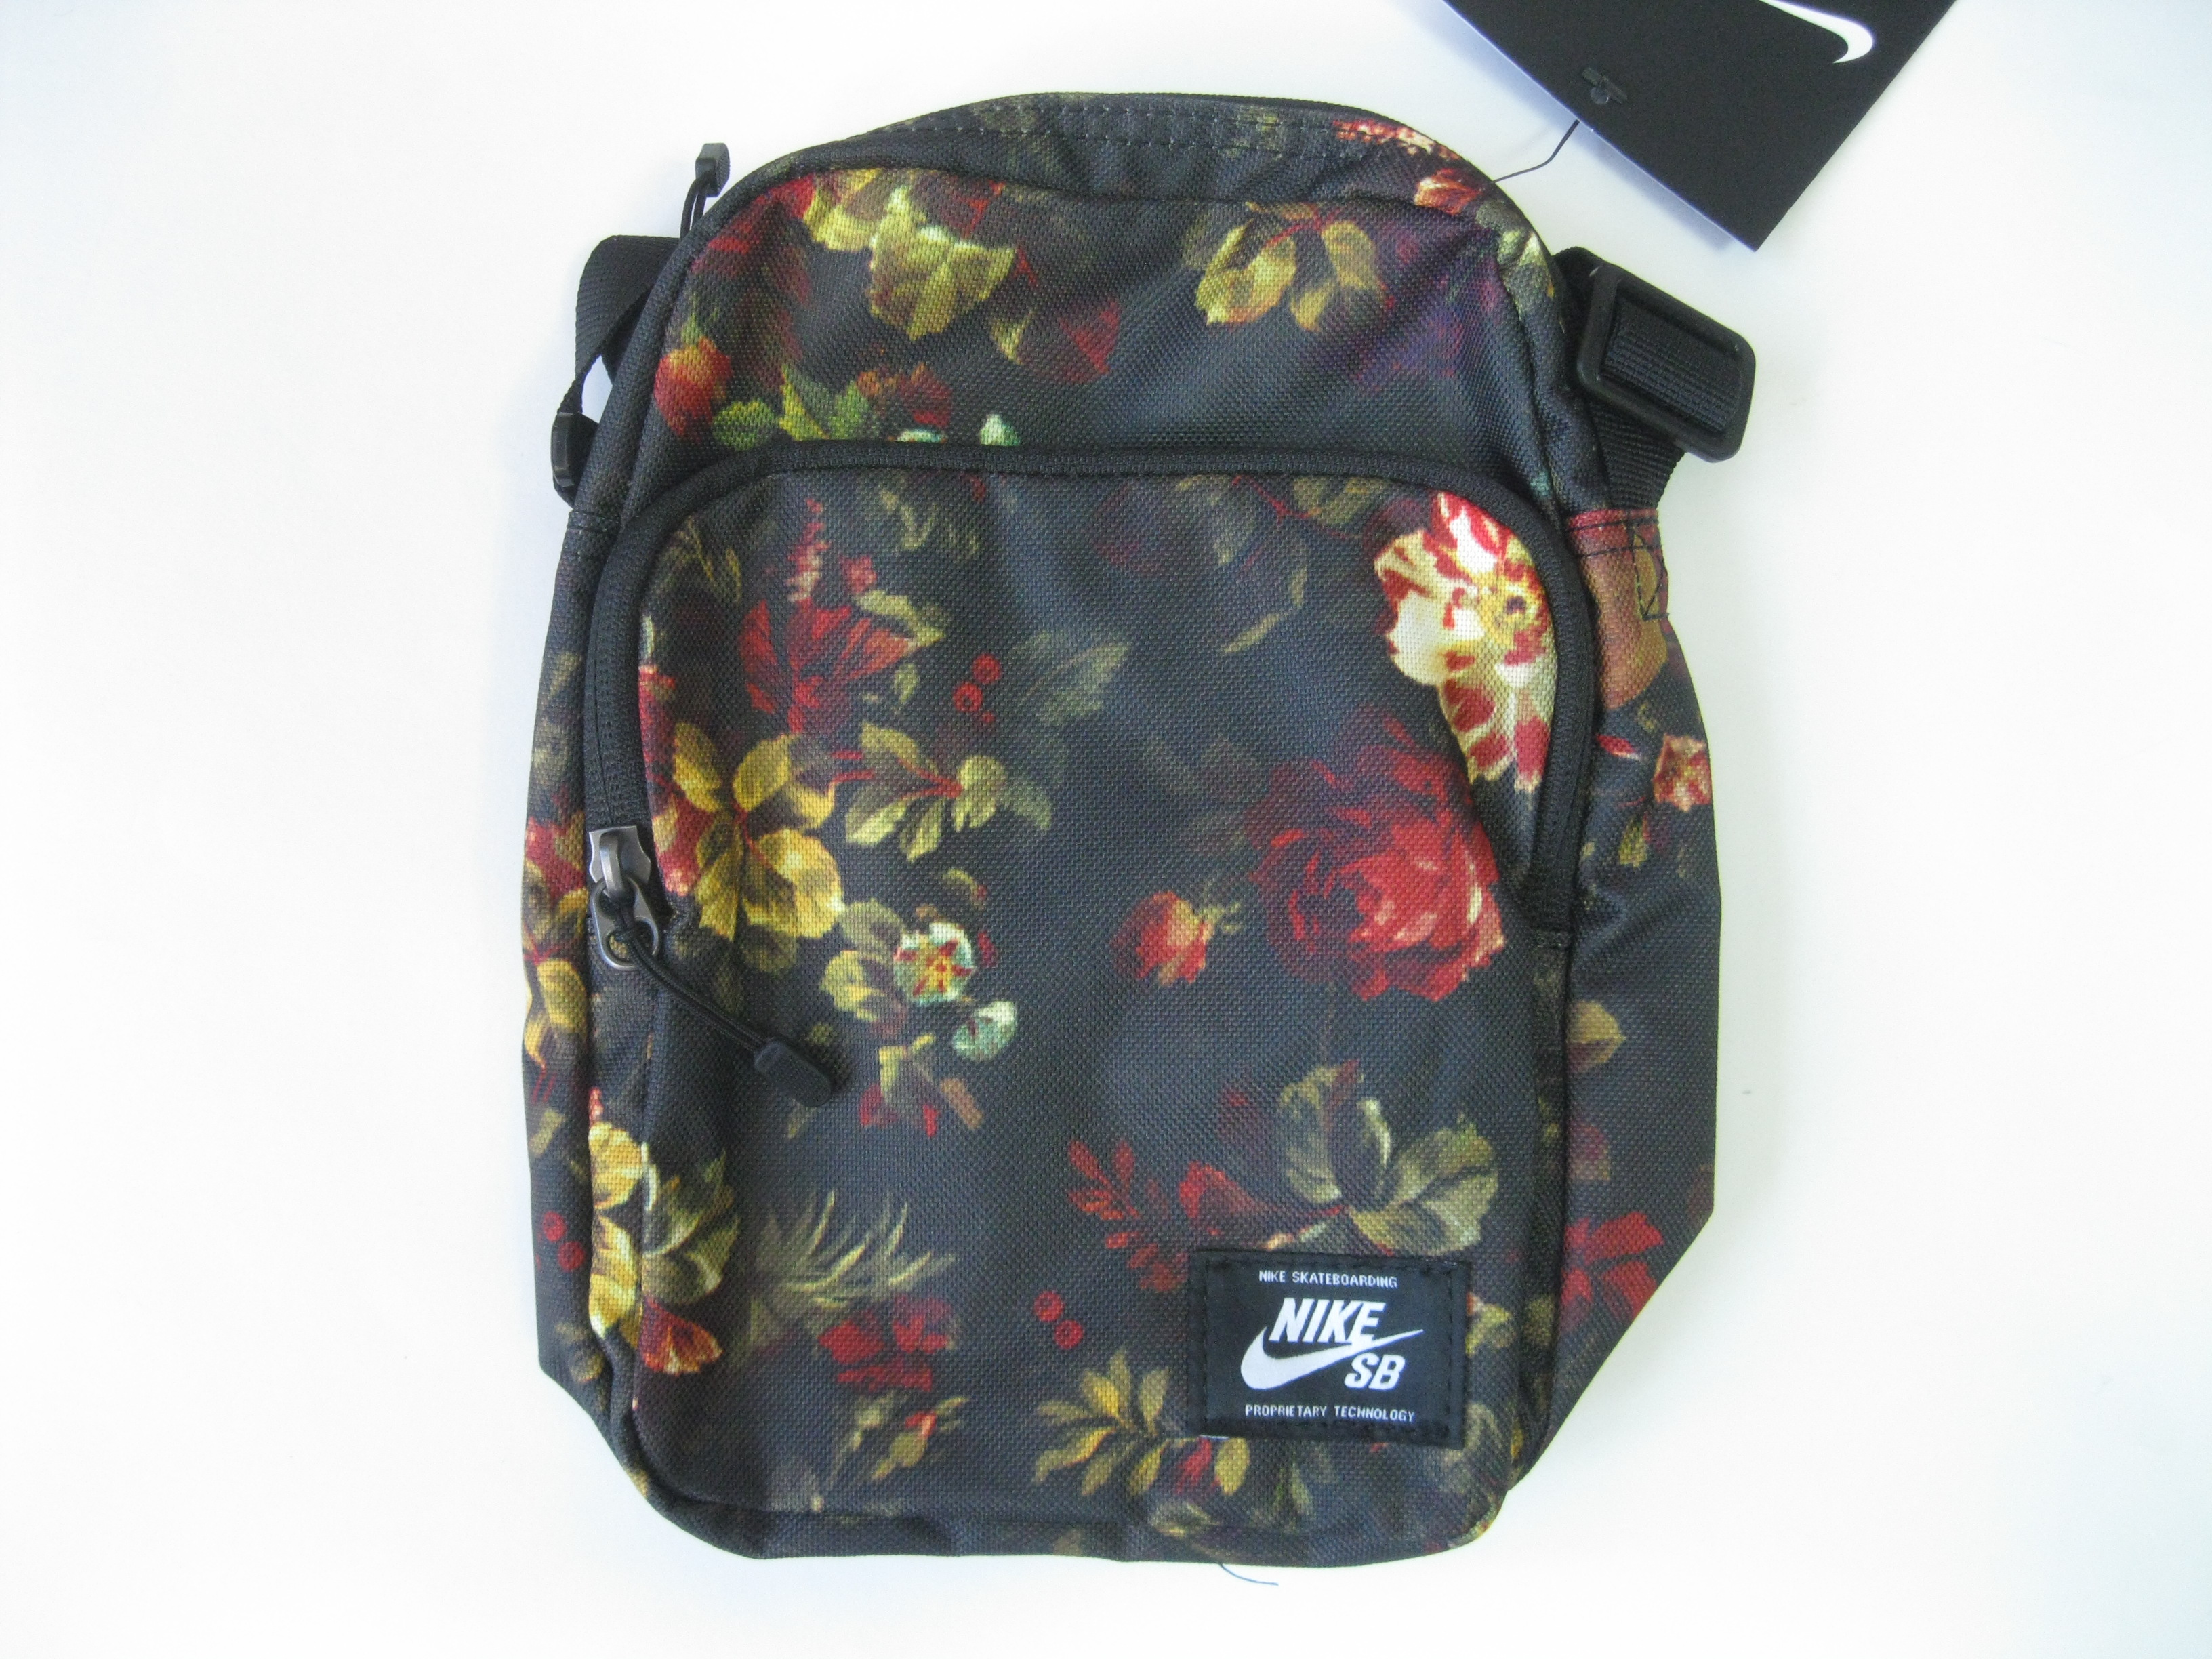 ab06d25b4f97 Nike SB Heritage Small Items Shoulder Bag Floral Size one size - Bags    Luggage for Sale - Grailed